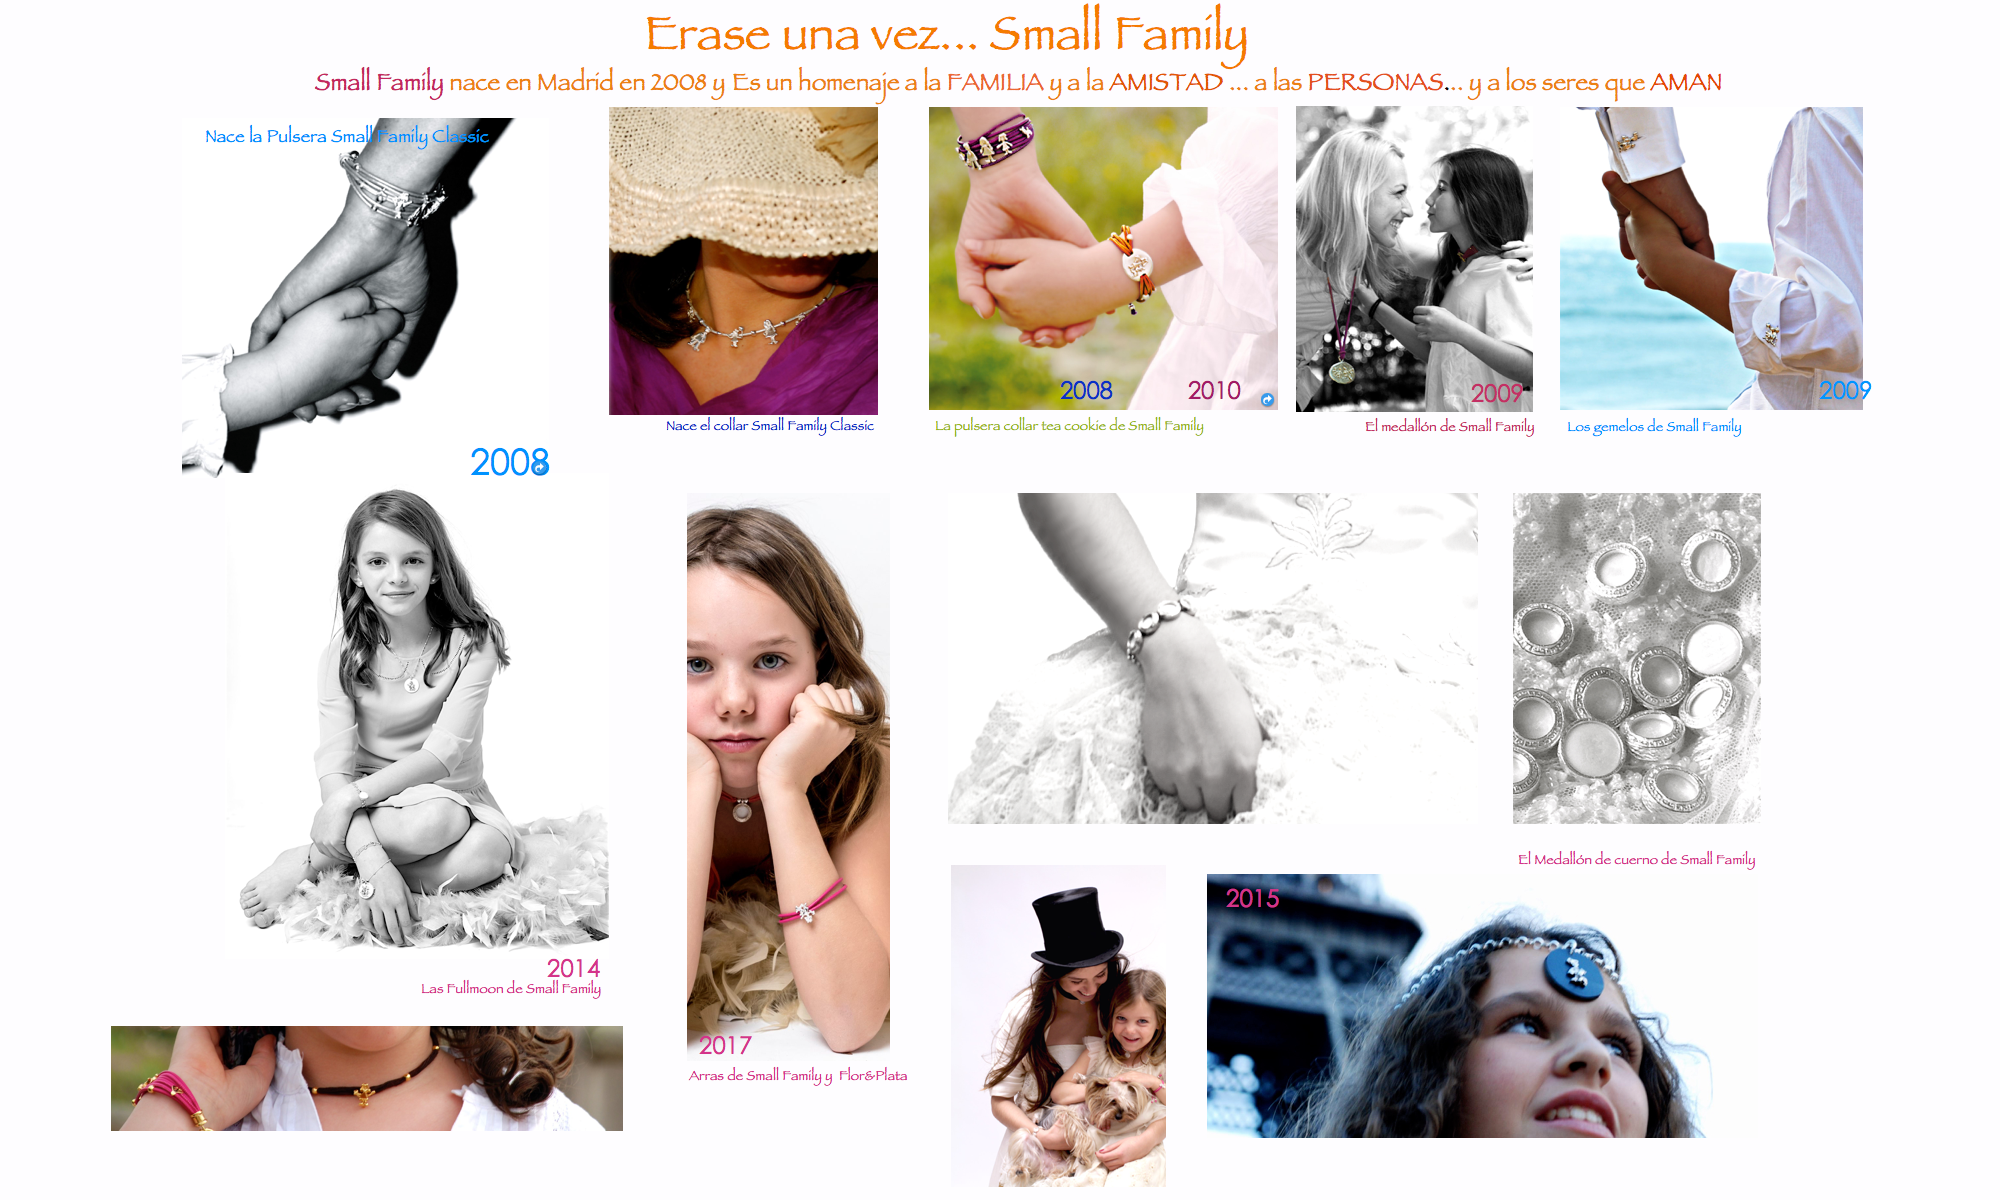 Erase una vez small family